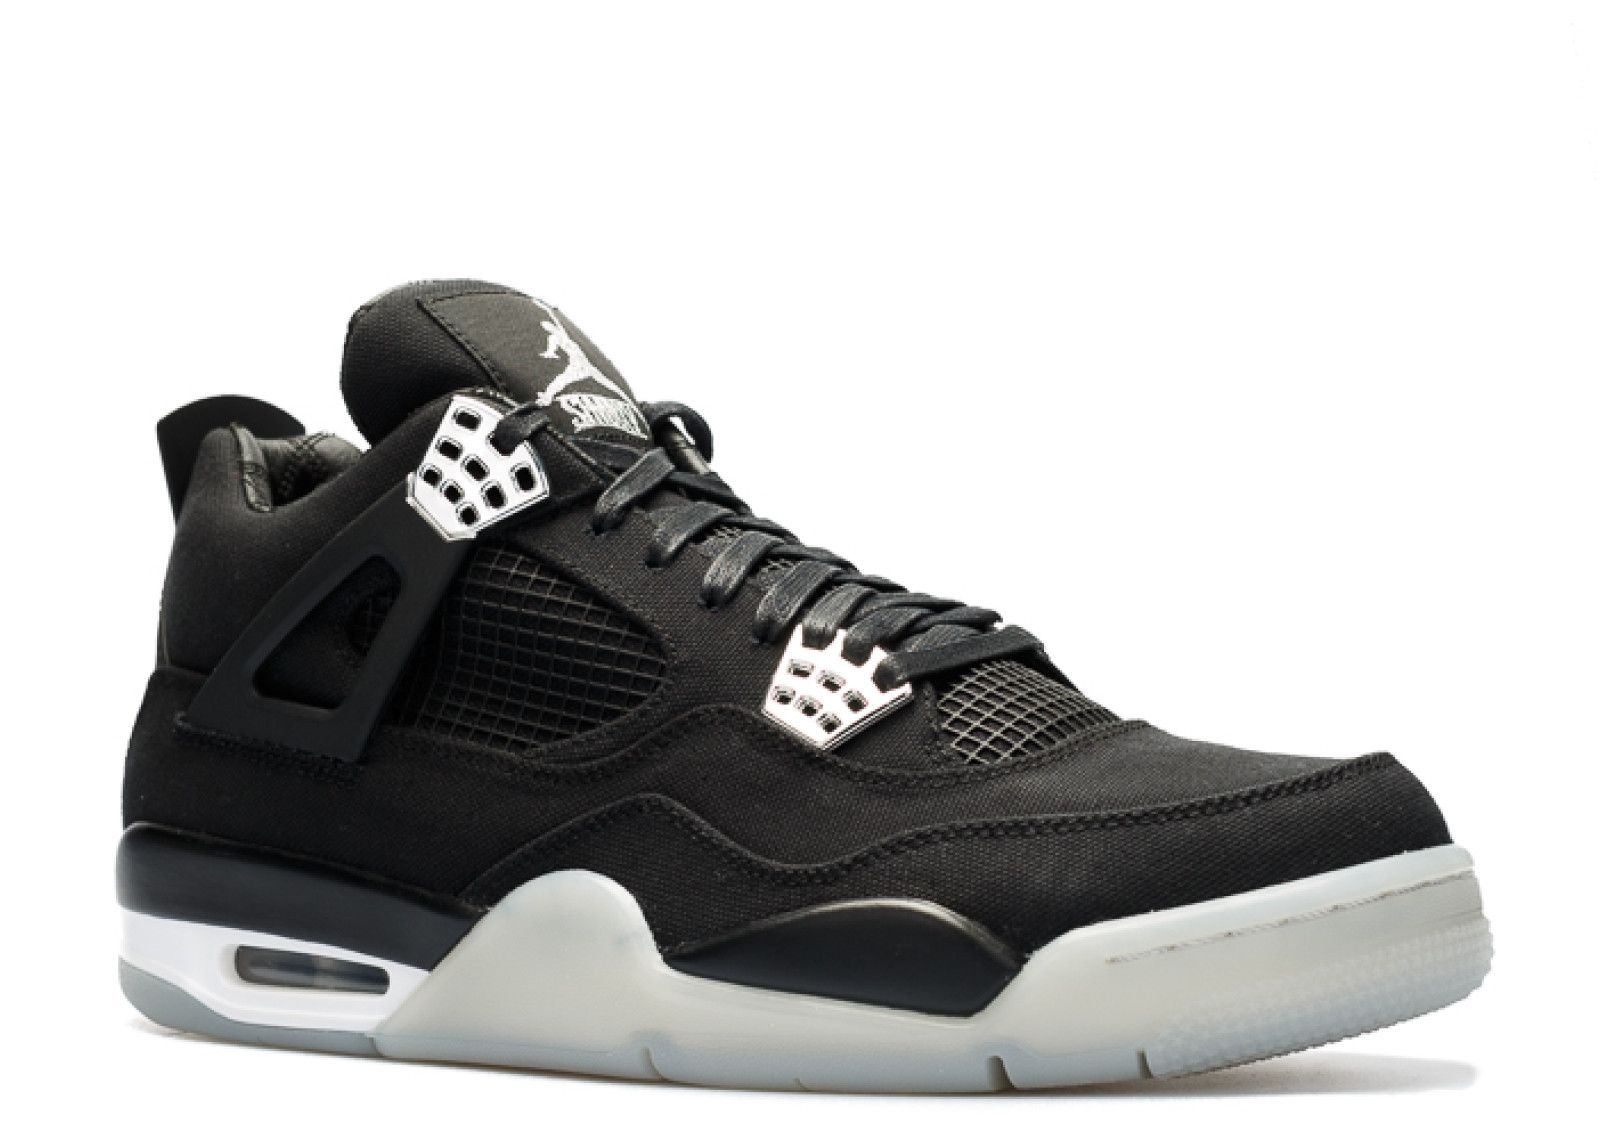 f9825aa1b7845d Air jordan 4 retro